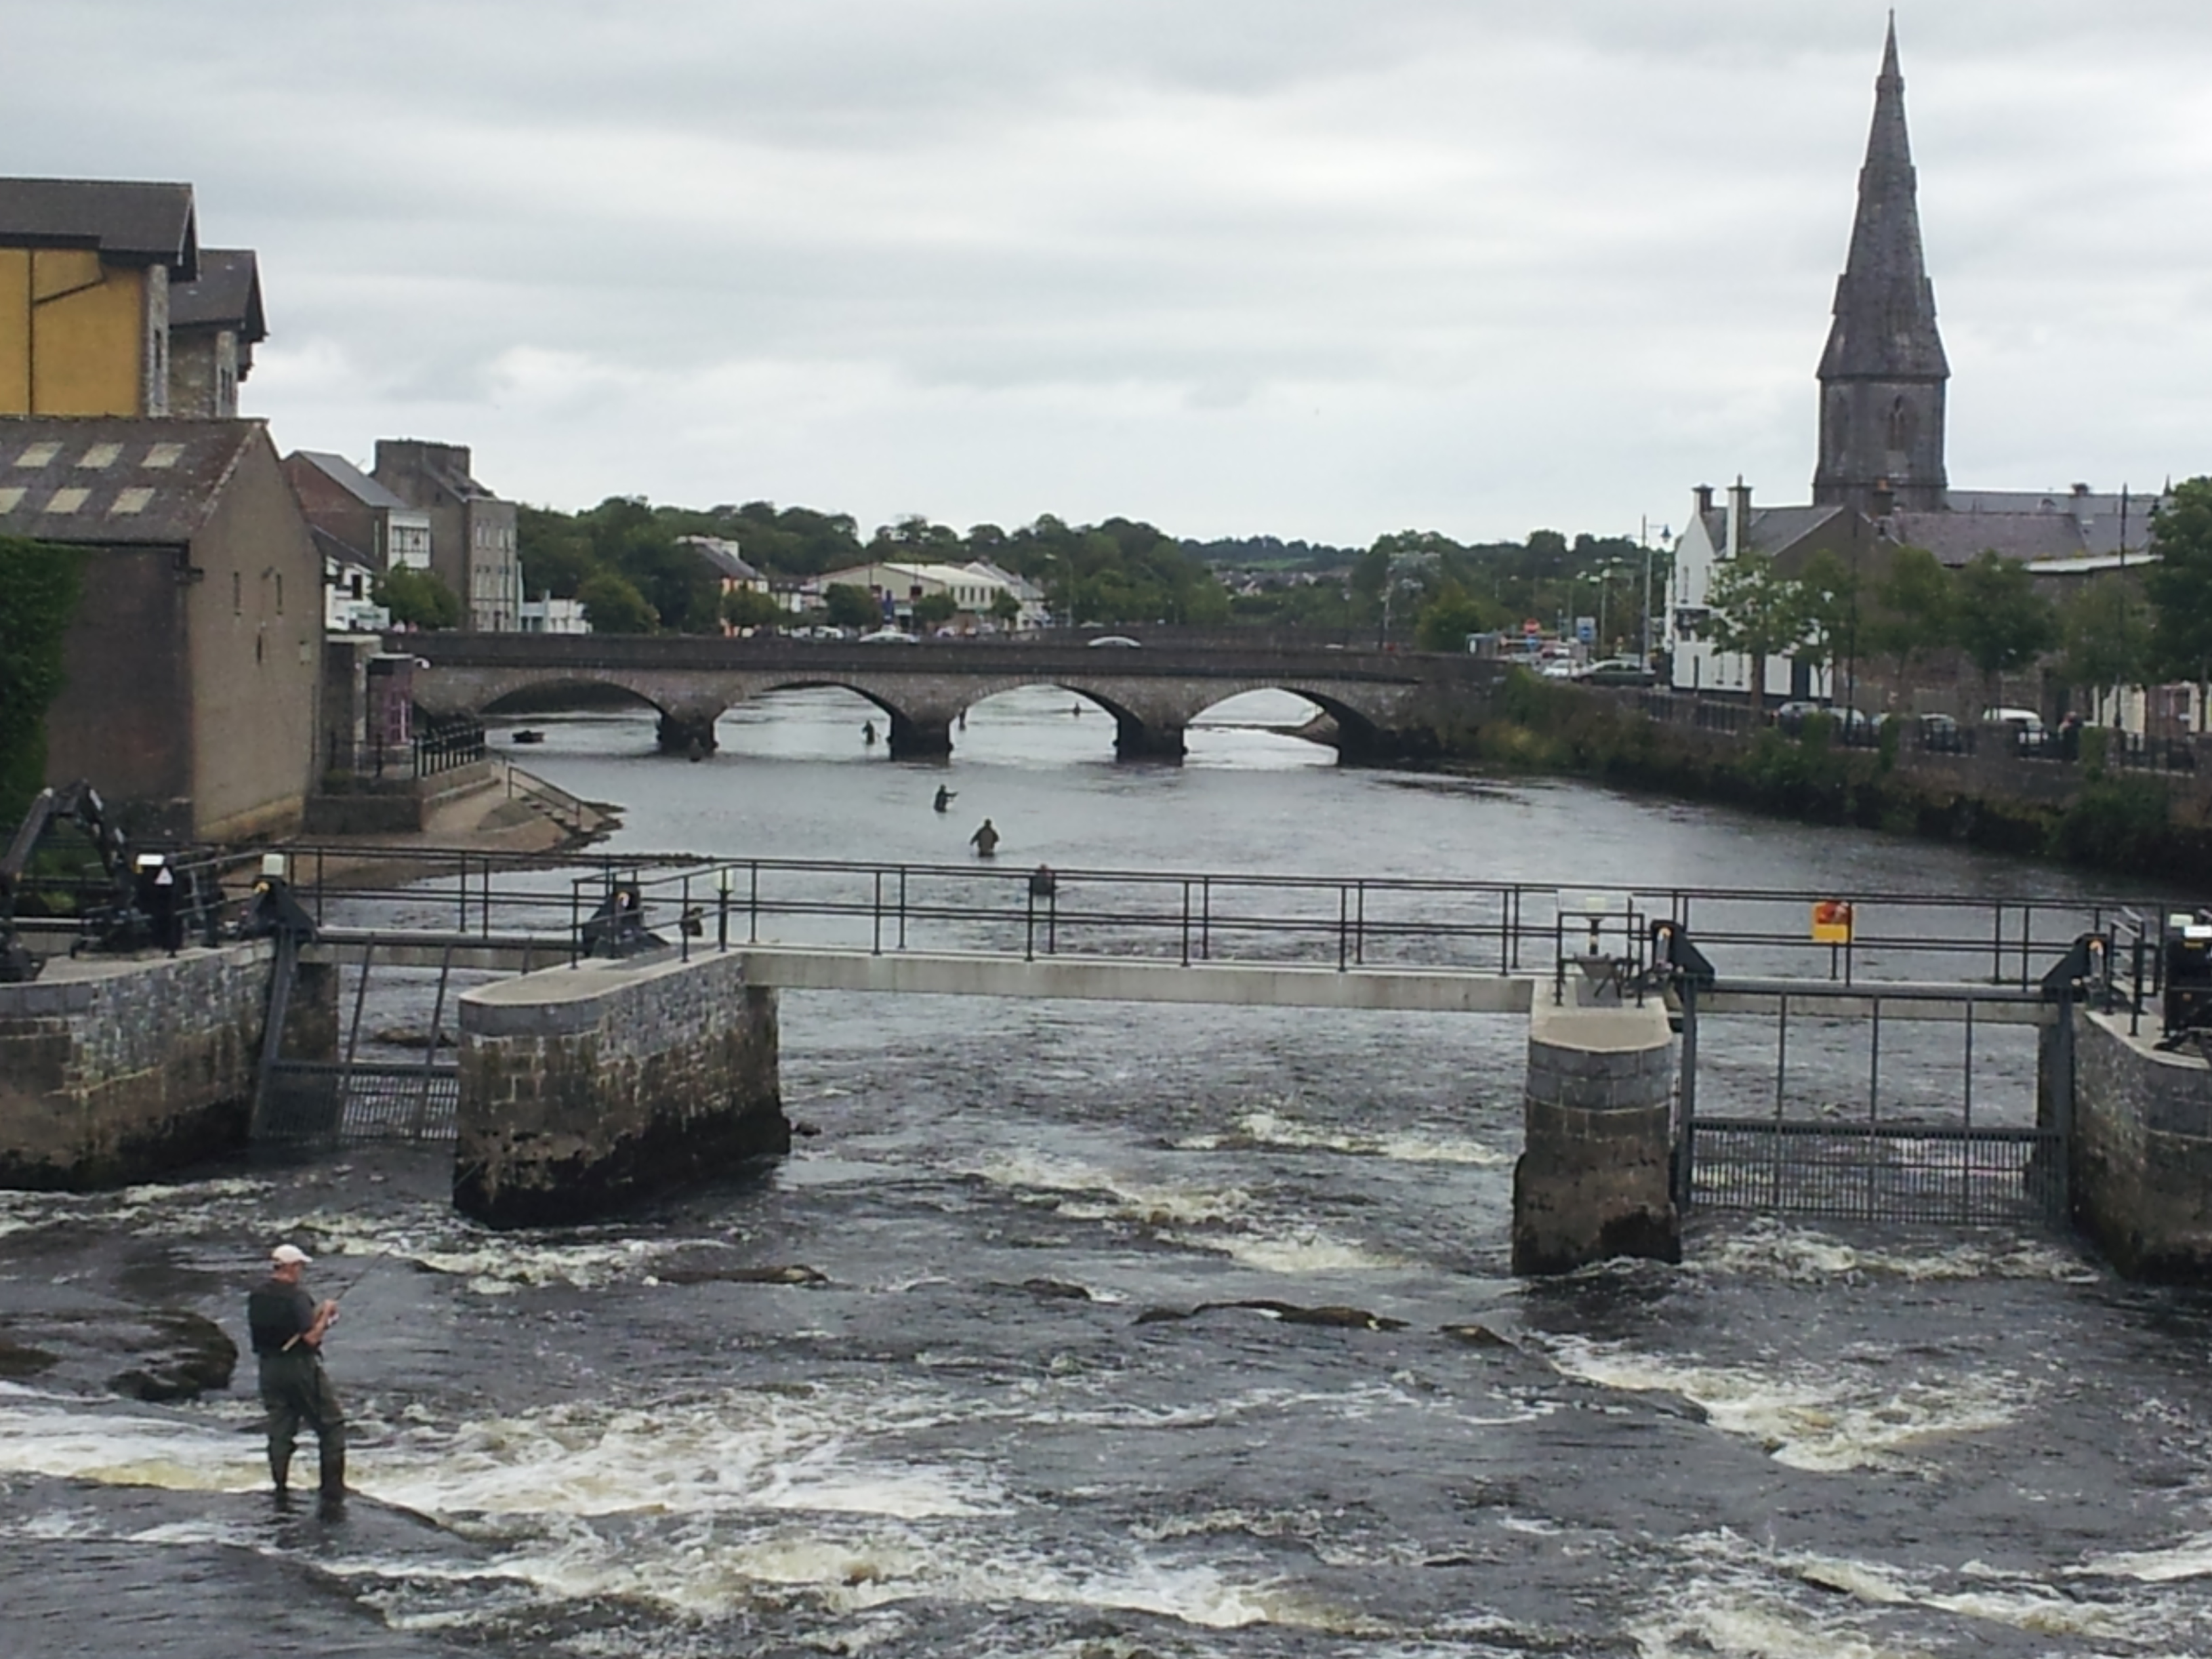 File:Fly fishing, River Moy, Ballina, Mayo, Ireland.jpg ...